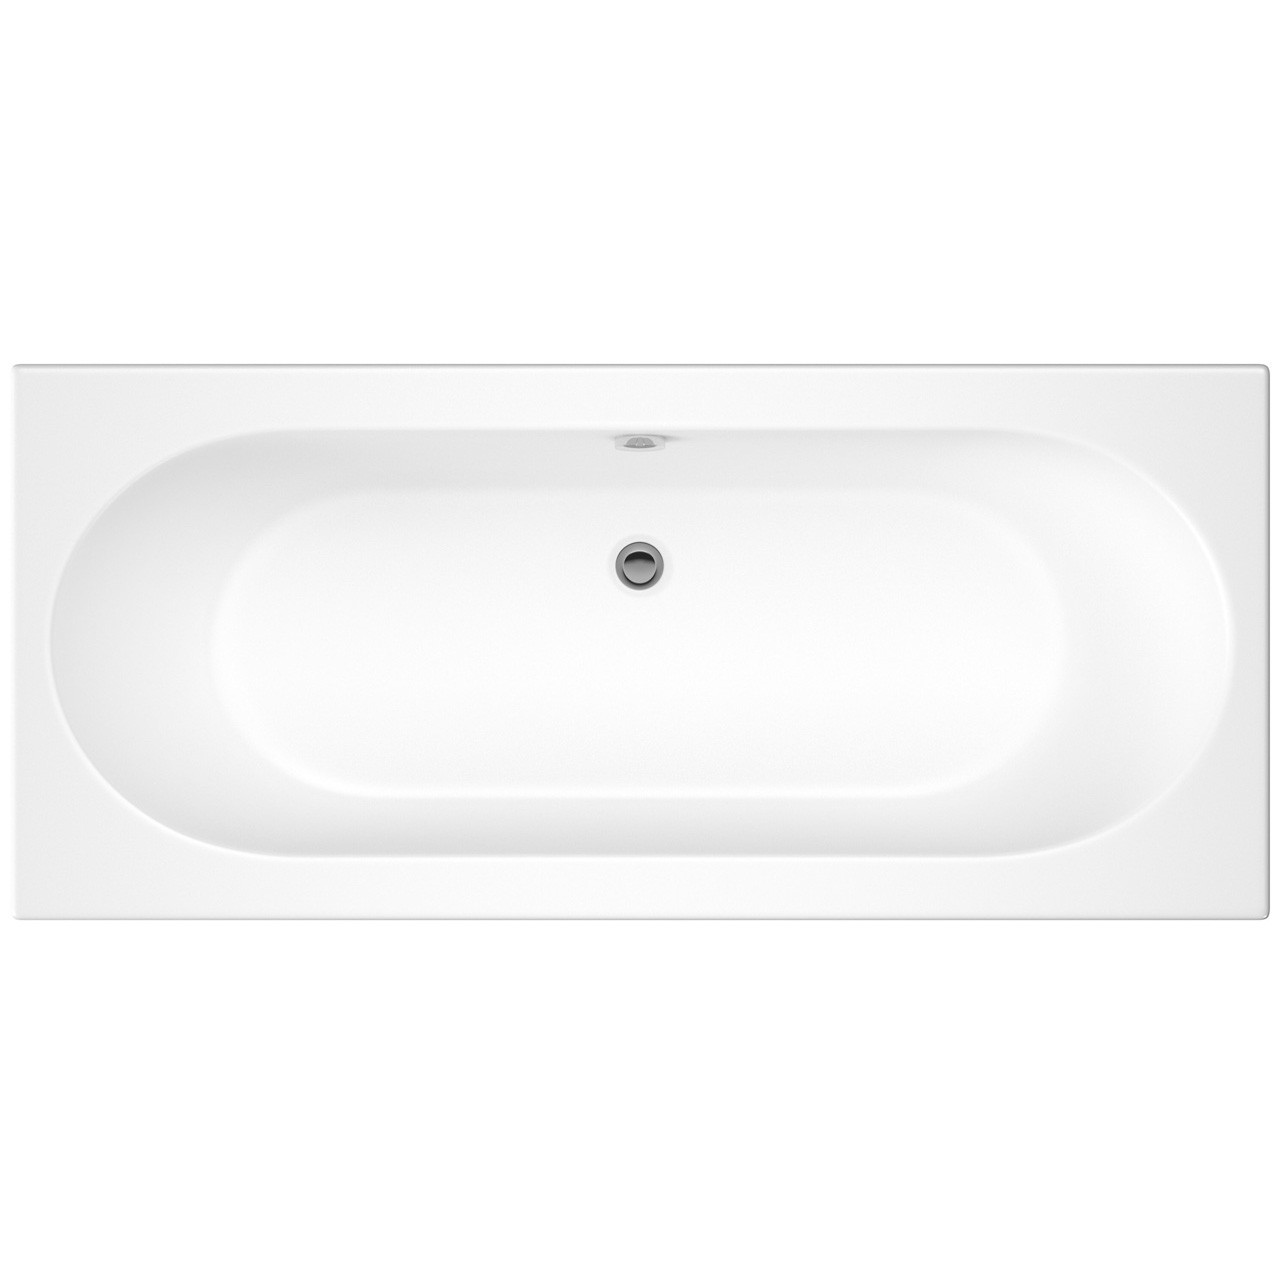 Premier Round Double Ended Bath 1700mm x 700mm - BDE009